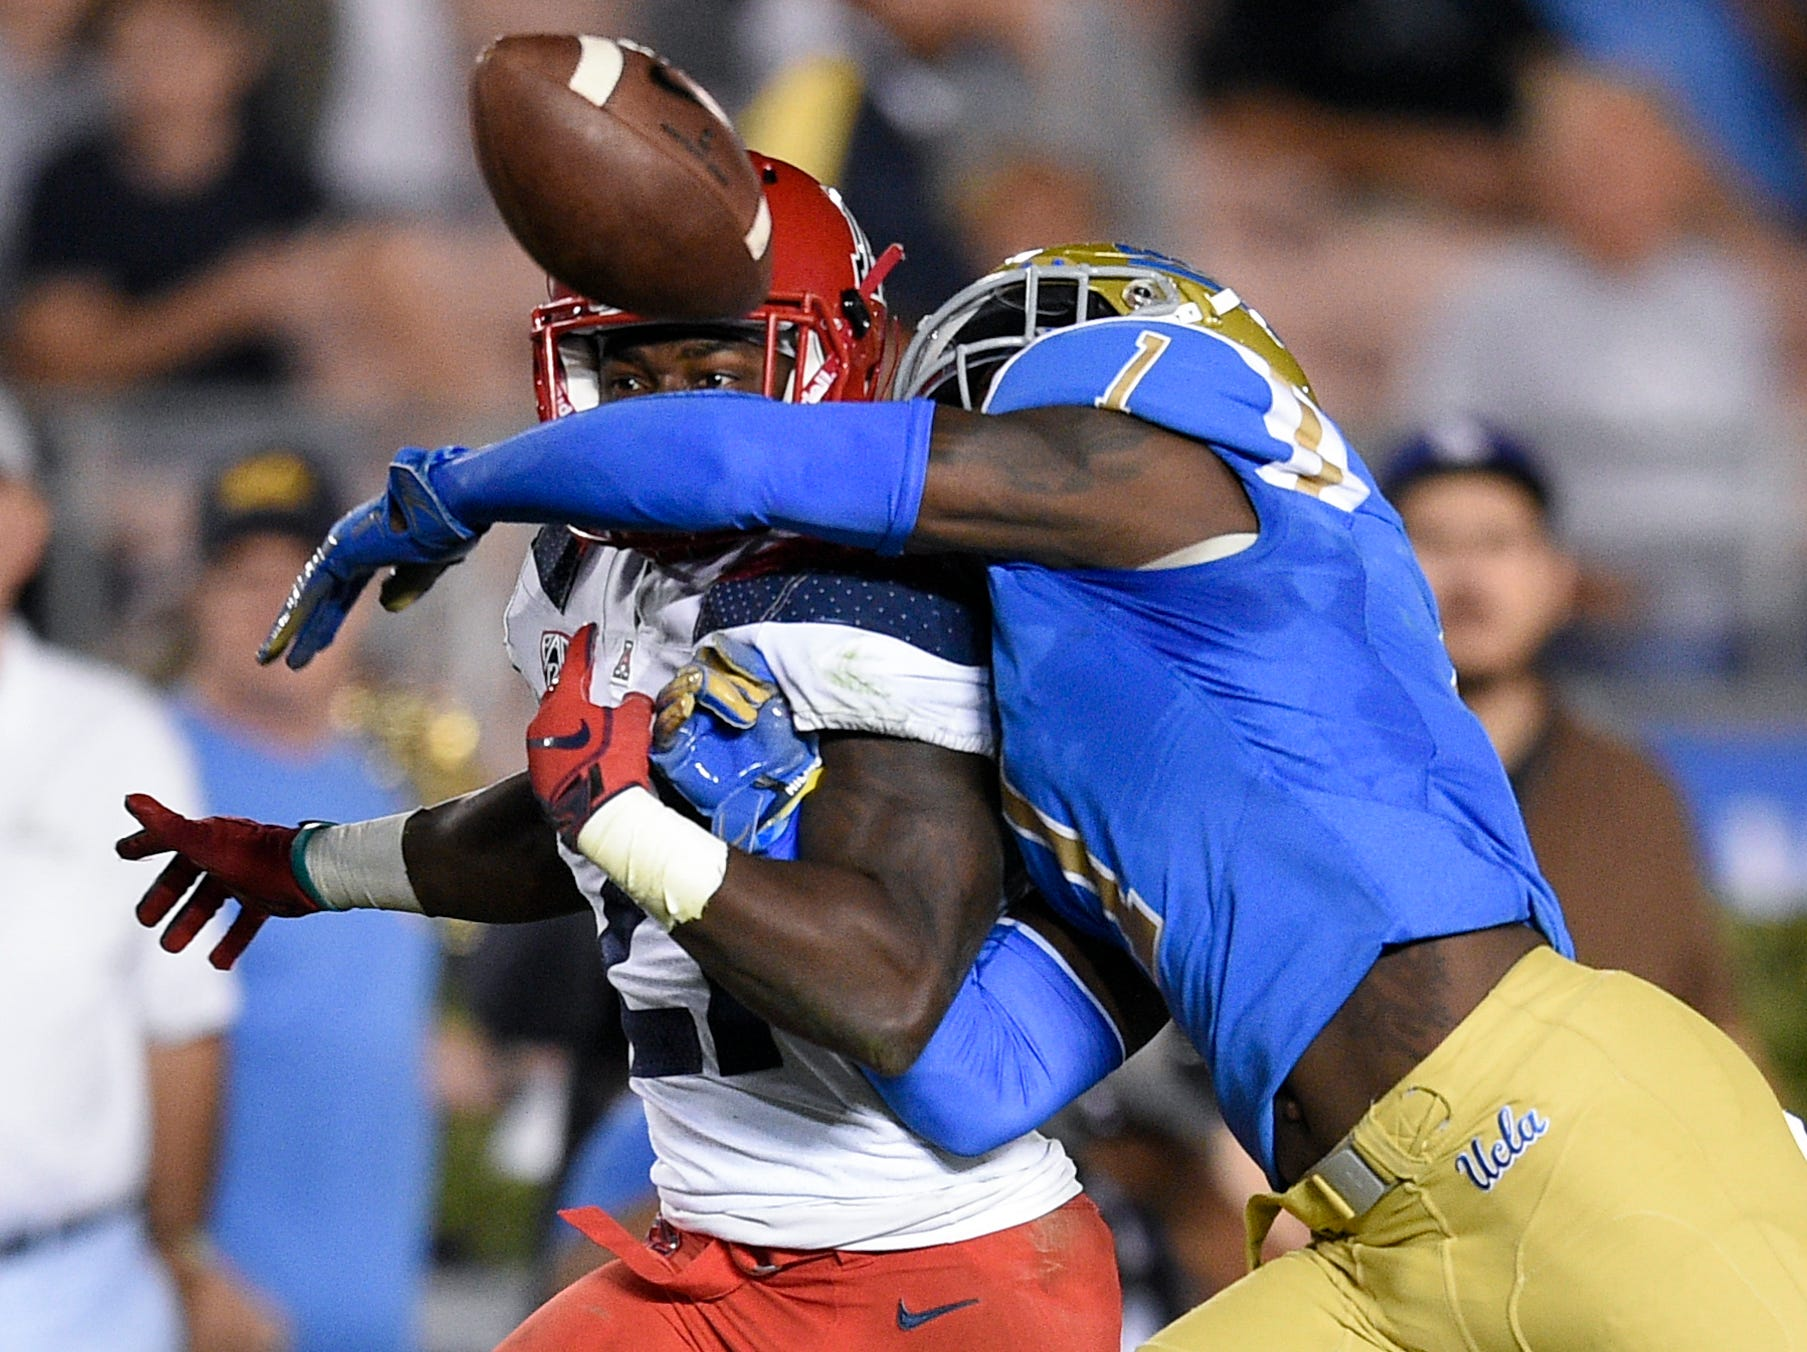 UCLA Bruins defensive back Darnay Holmes (1) knocks the ball away from Arizona Wildcats running back J.J. Taylor (21) for a fumble during the first half at the Rose Bowl.